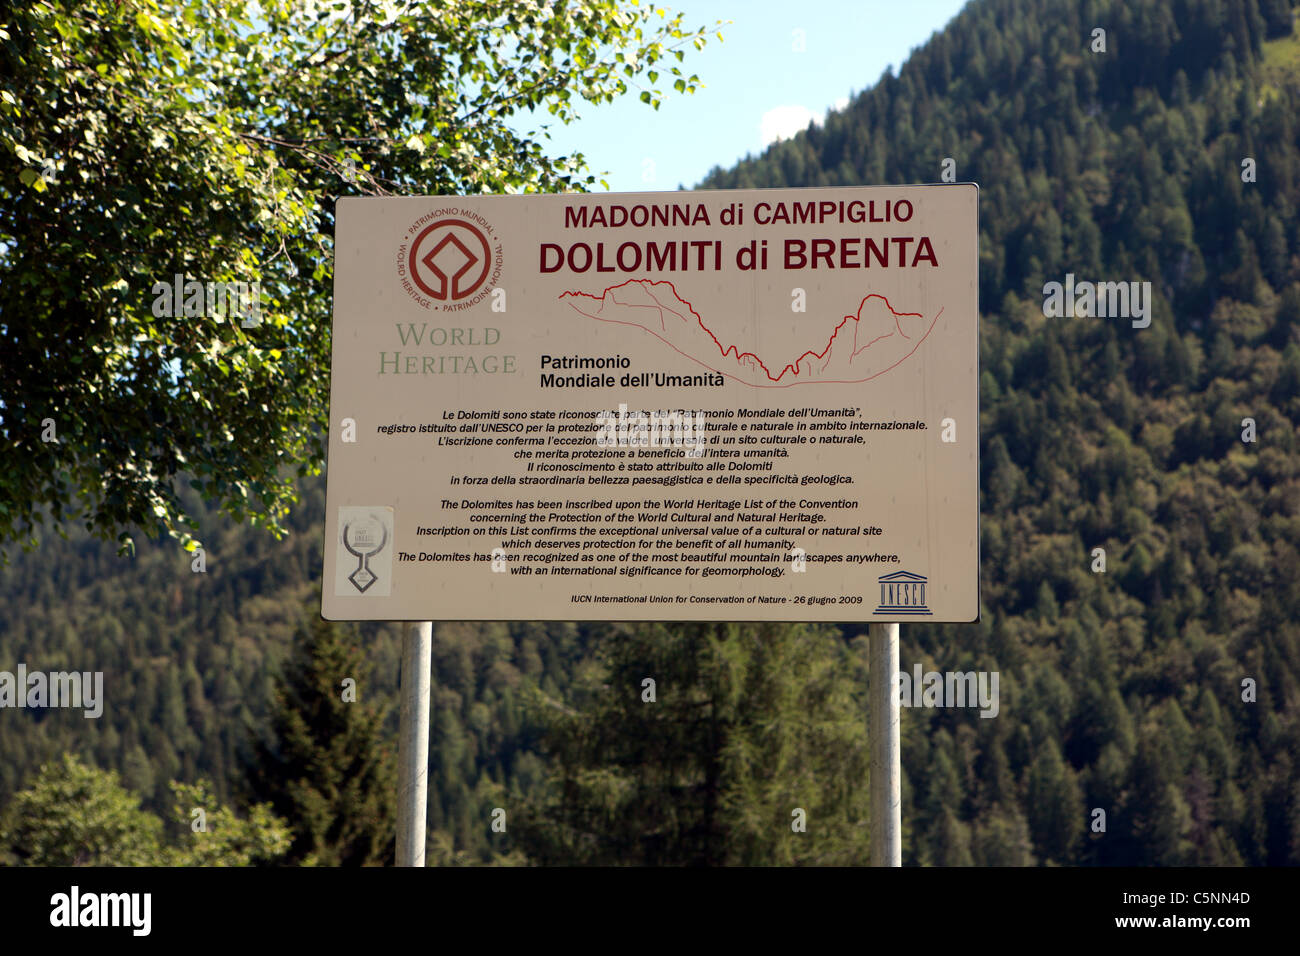 Sign outside Madonna di Campiglio recognising that the Italian Dolomites are on the World Heritage List - Stock Image